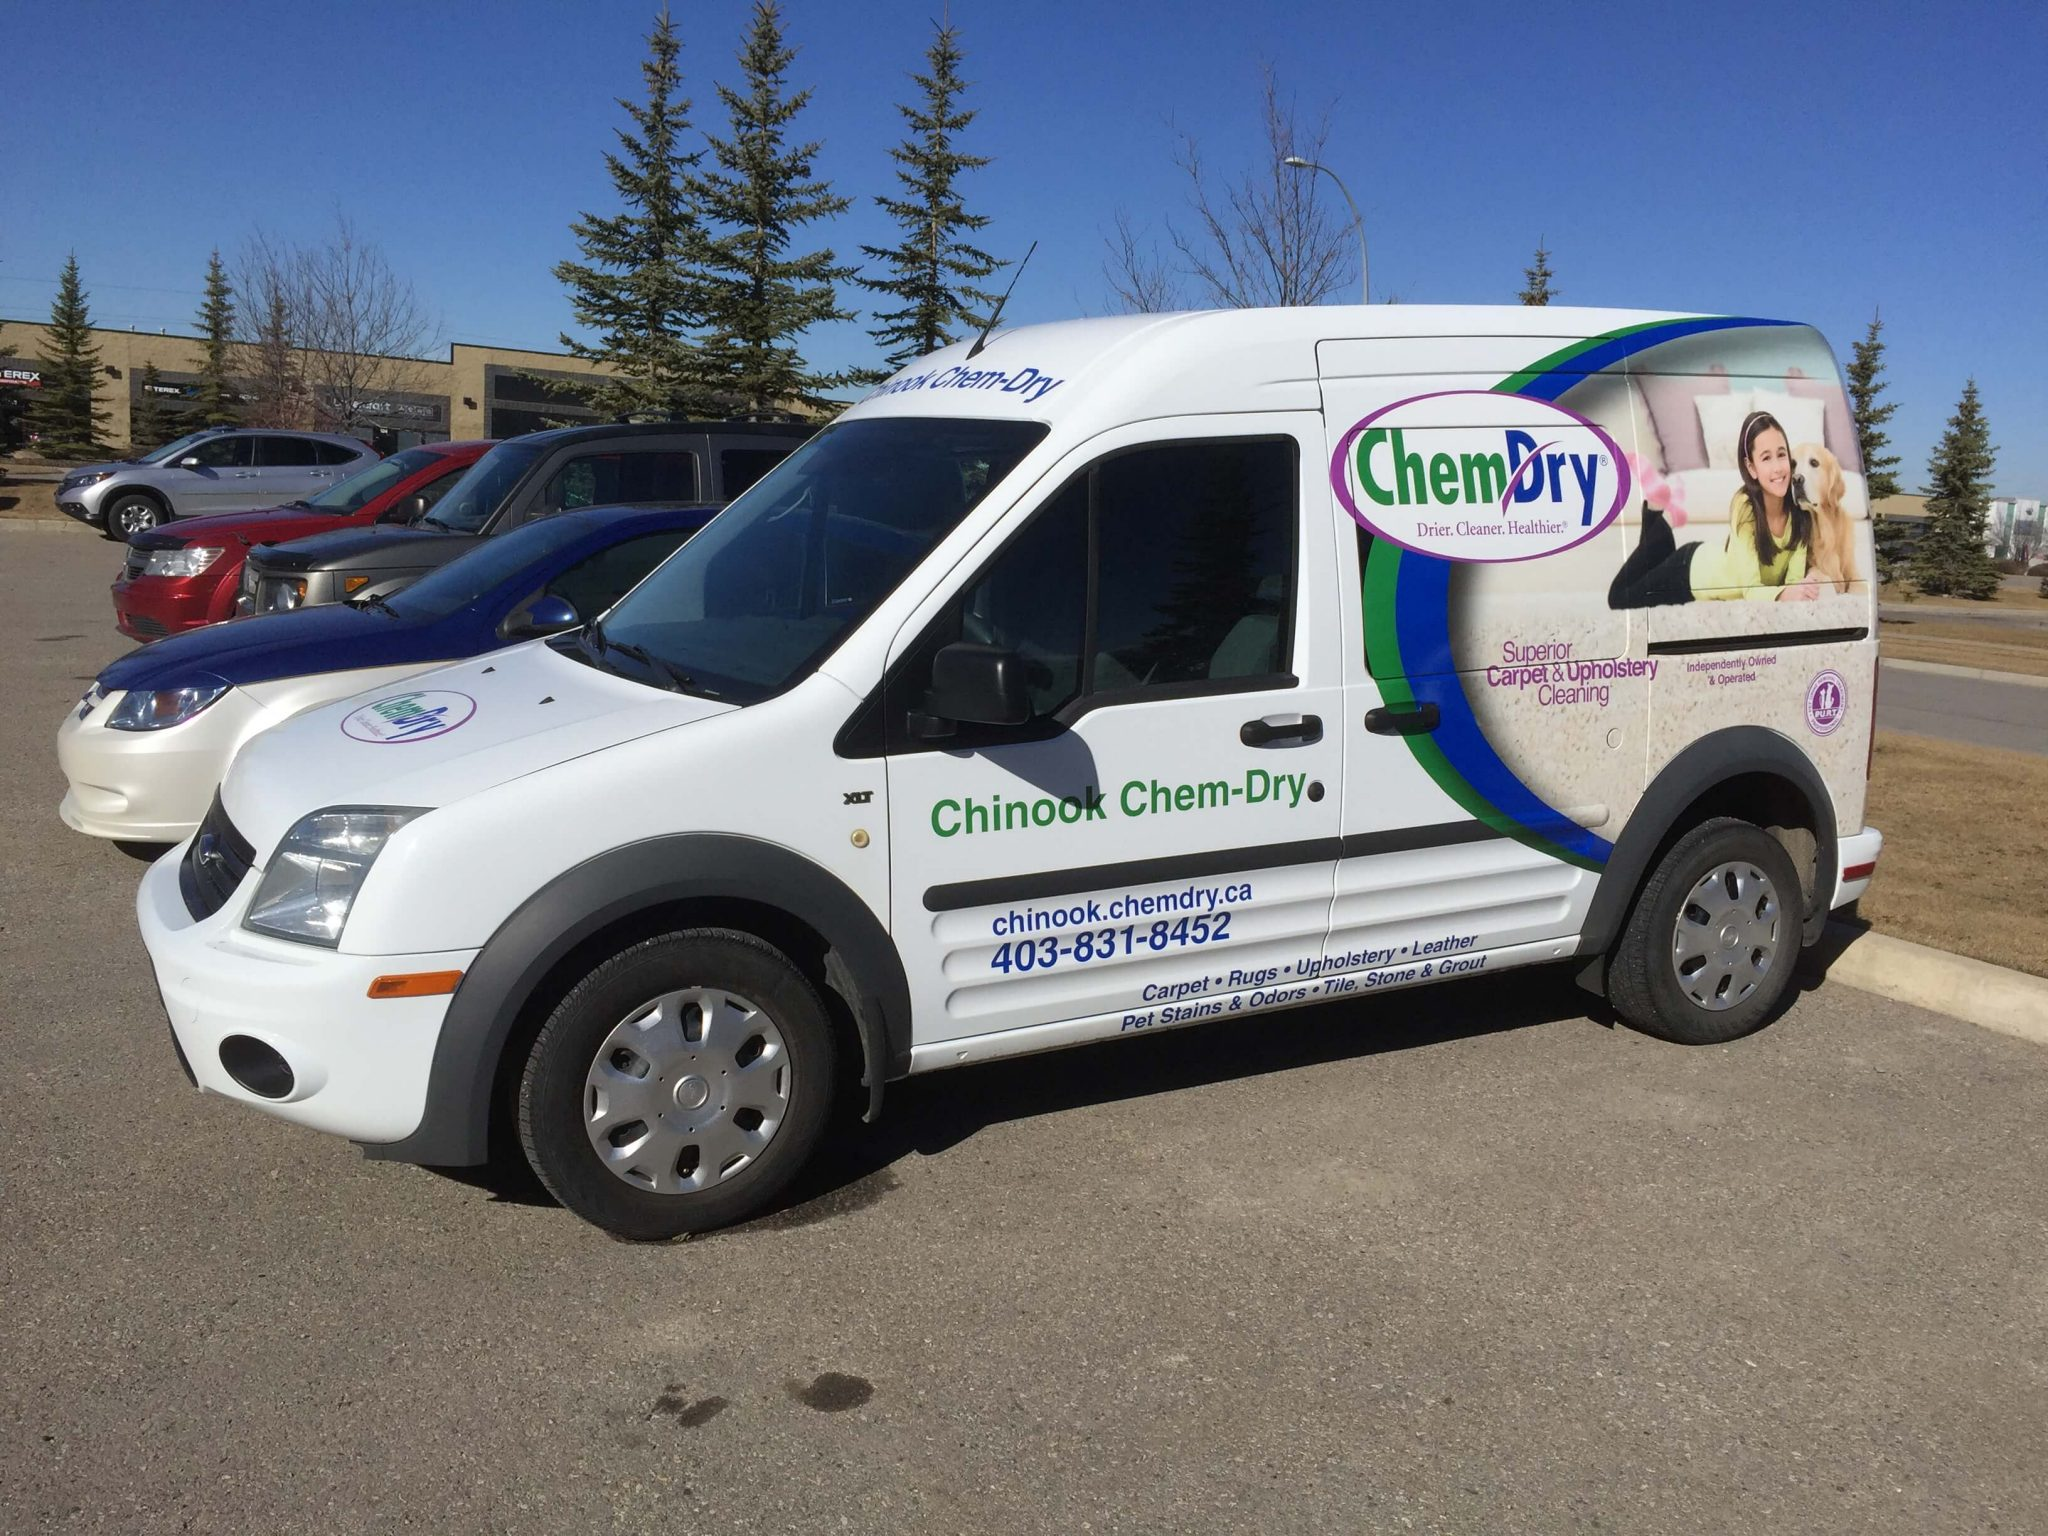 Chinook chem-dry van